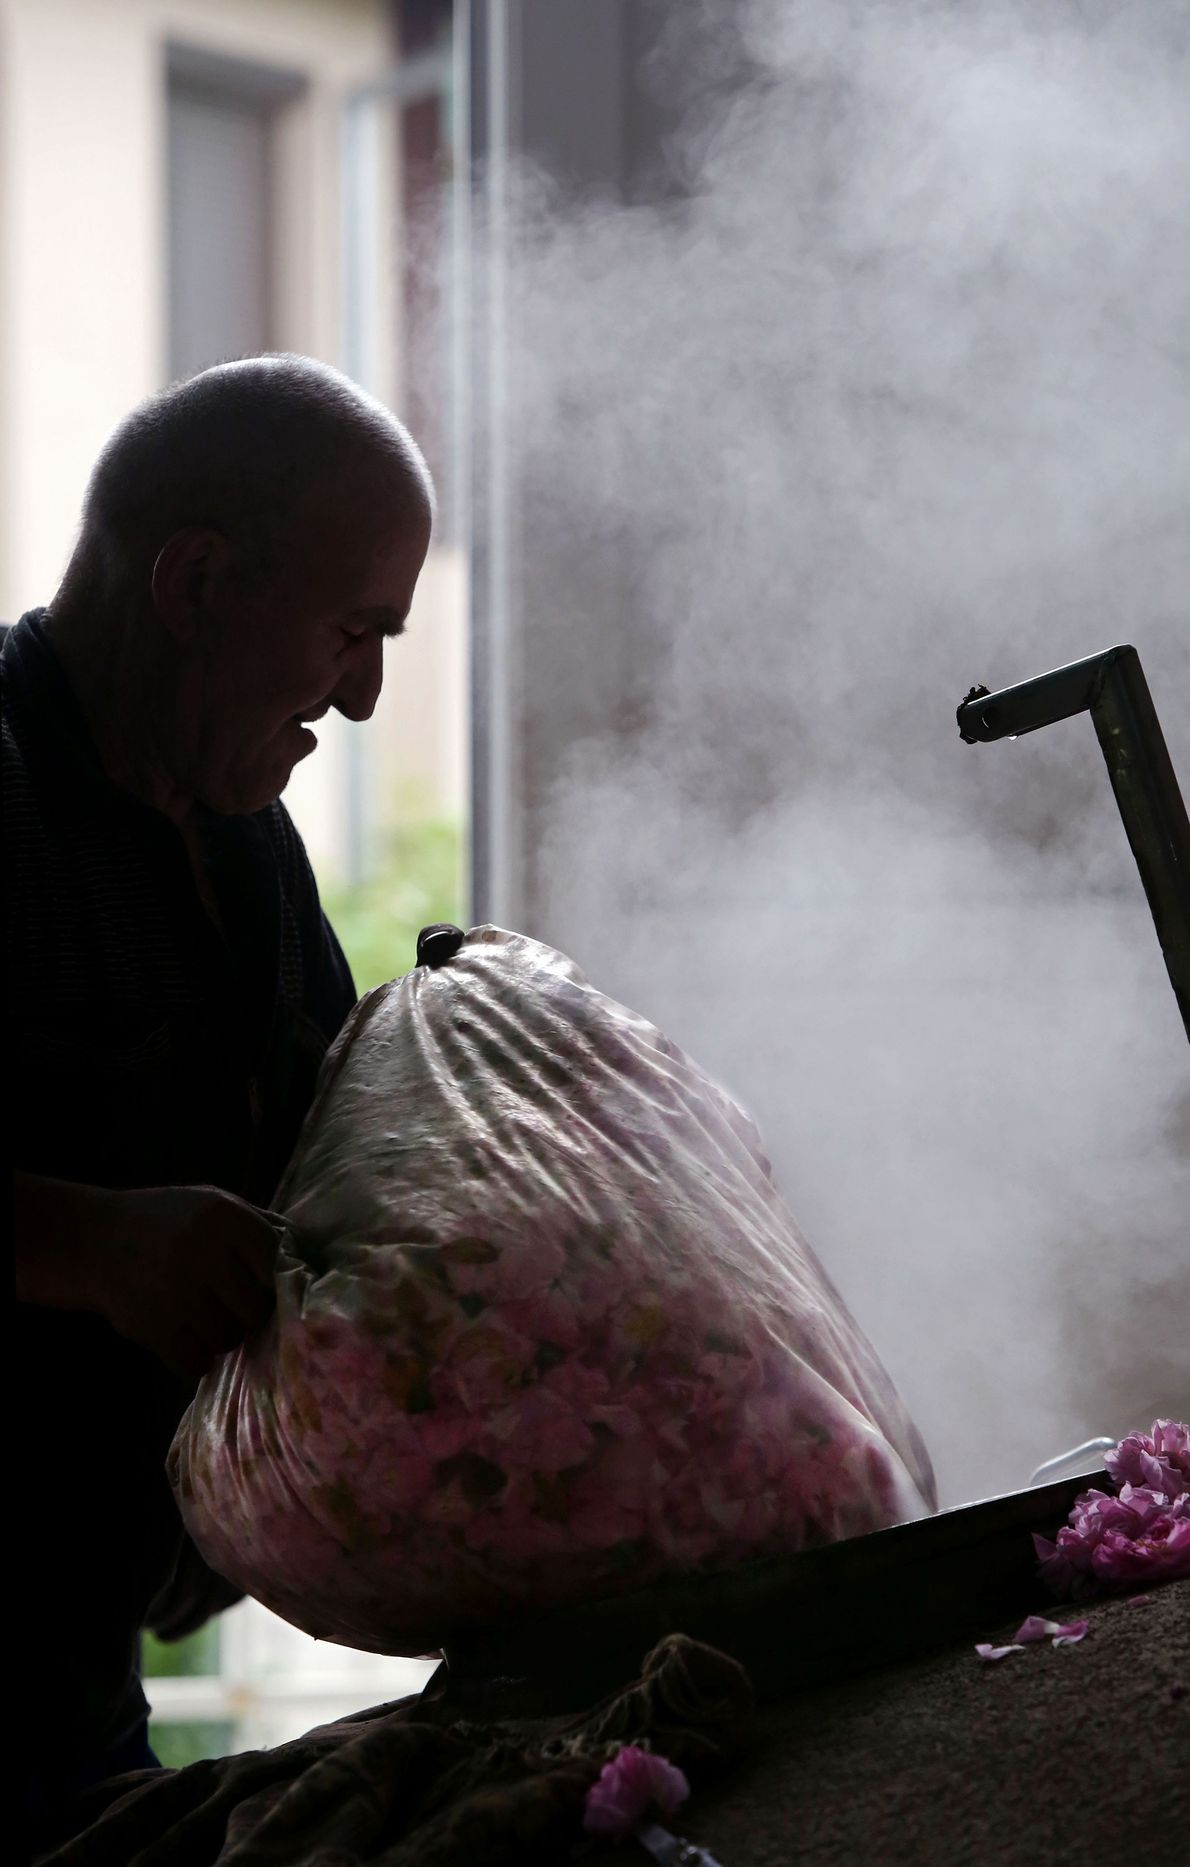 Marin Stoyanov loads bags of roses into cauldrons at Lema Distillery in Kazanlak.